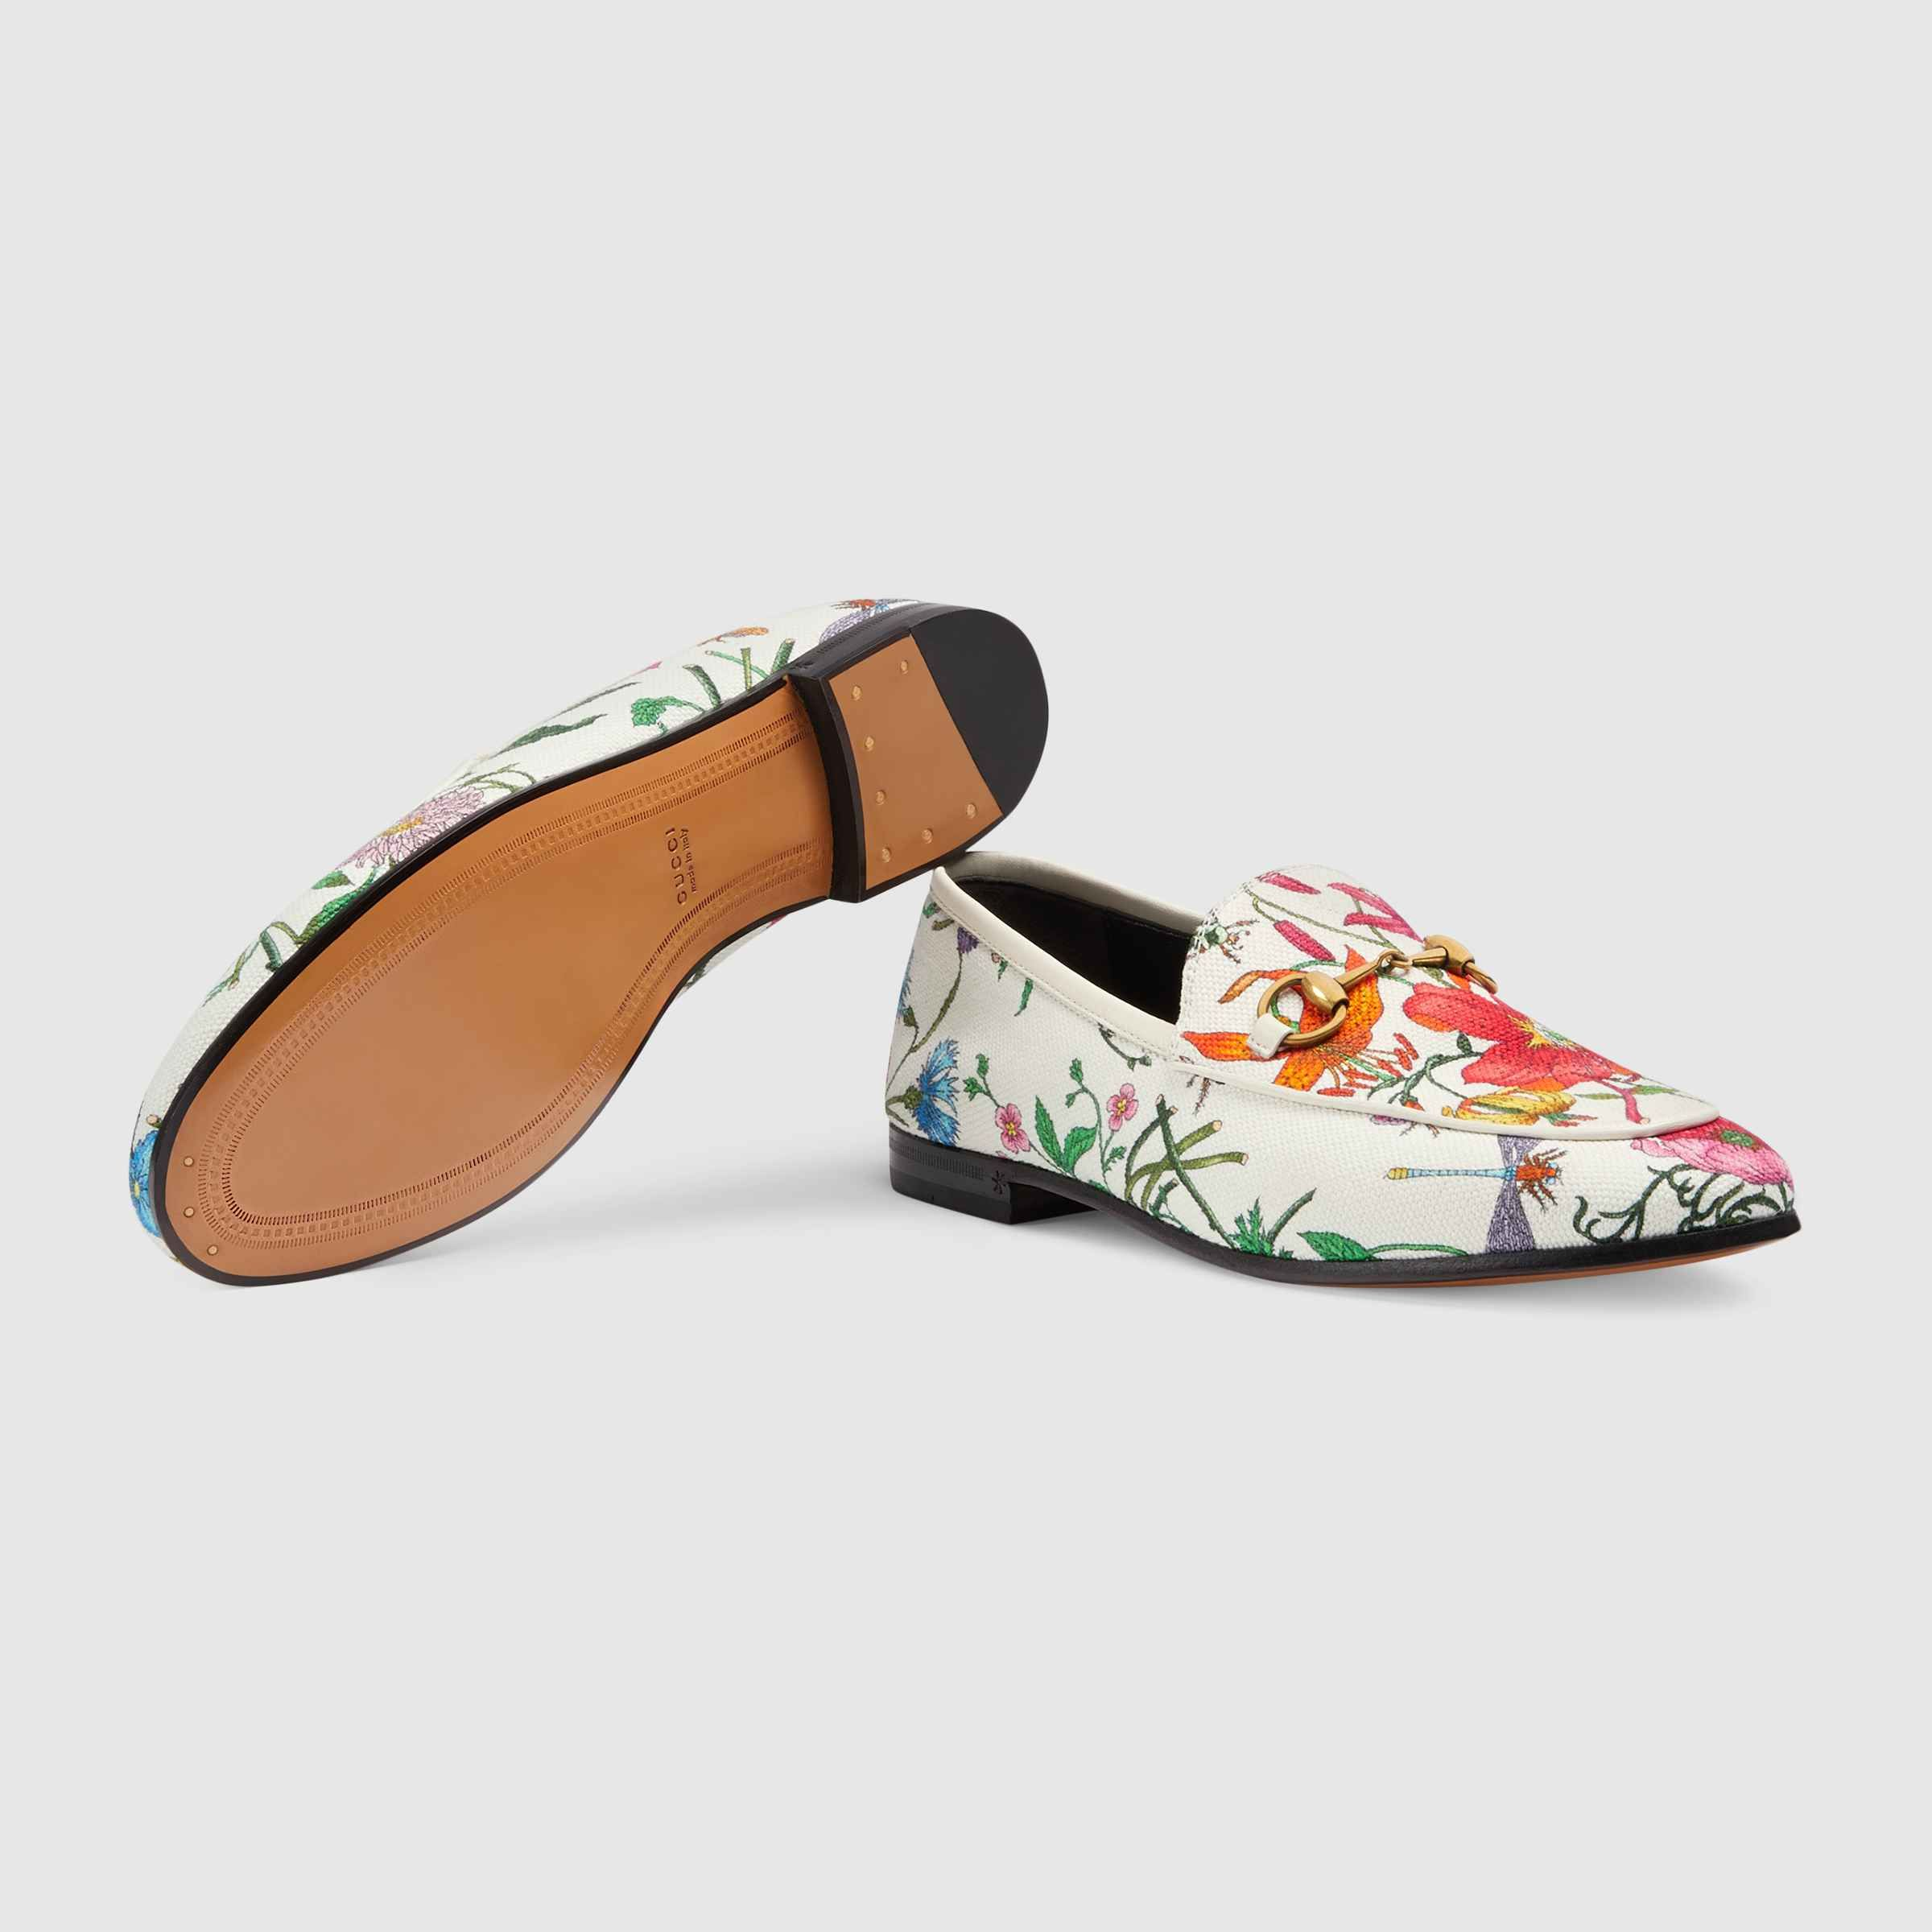 98bd2e2a4b2 Shop the Gucci Jordaan Flora print canvas loafer by Gucci. Presented on the  Gucci Jordaan